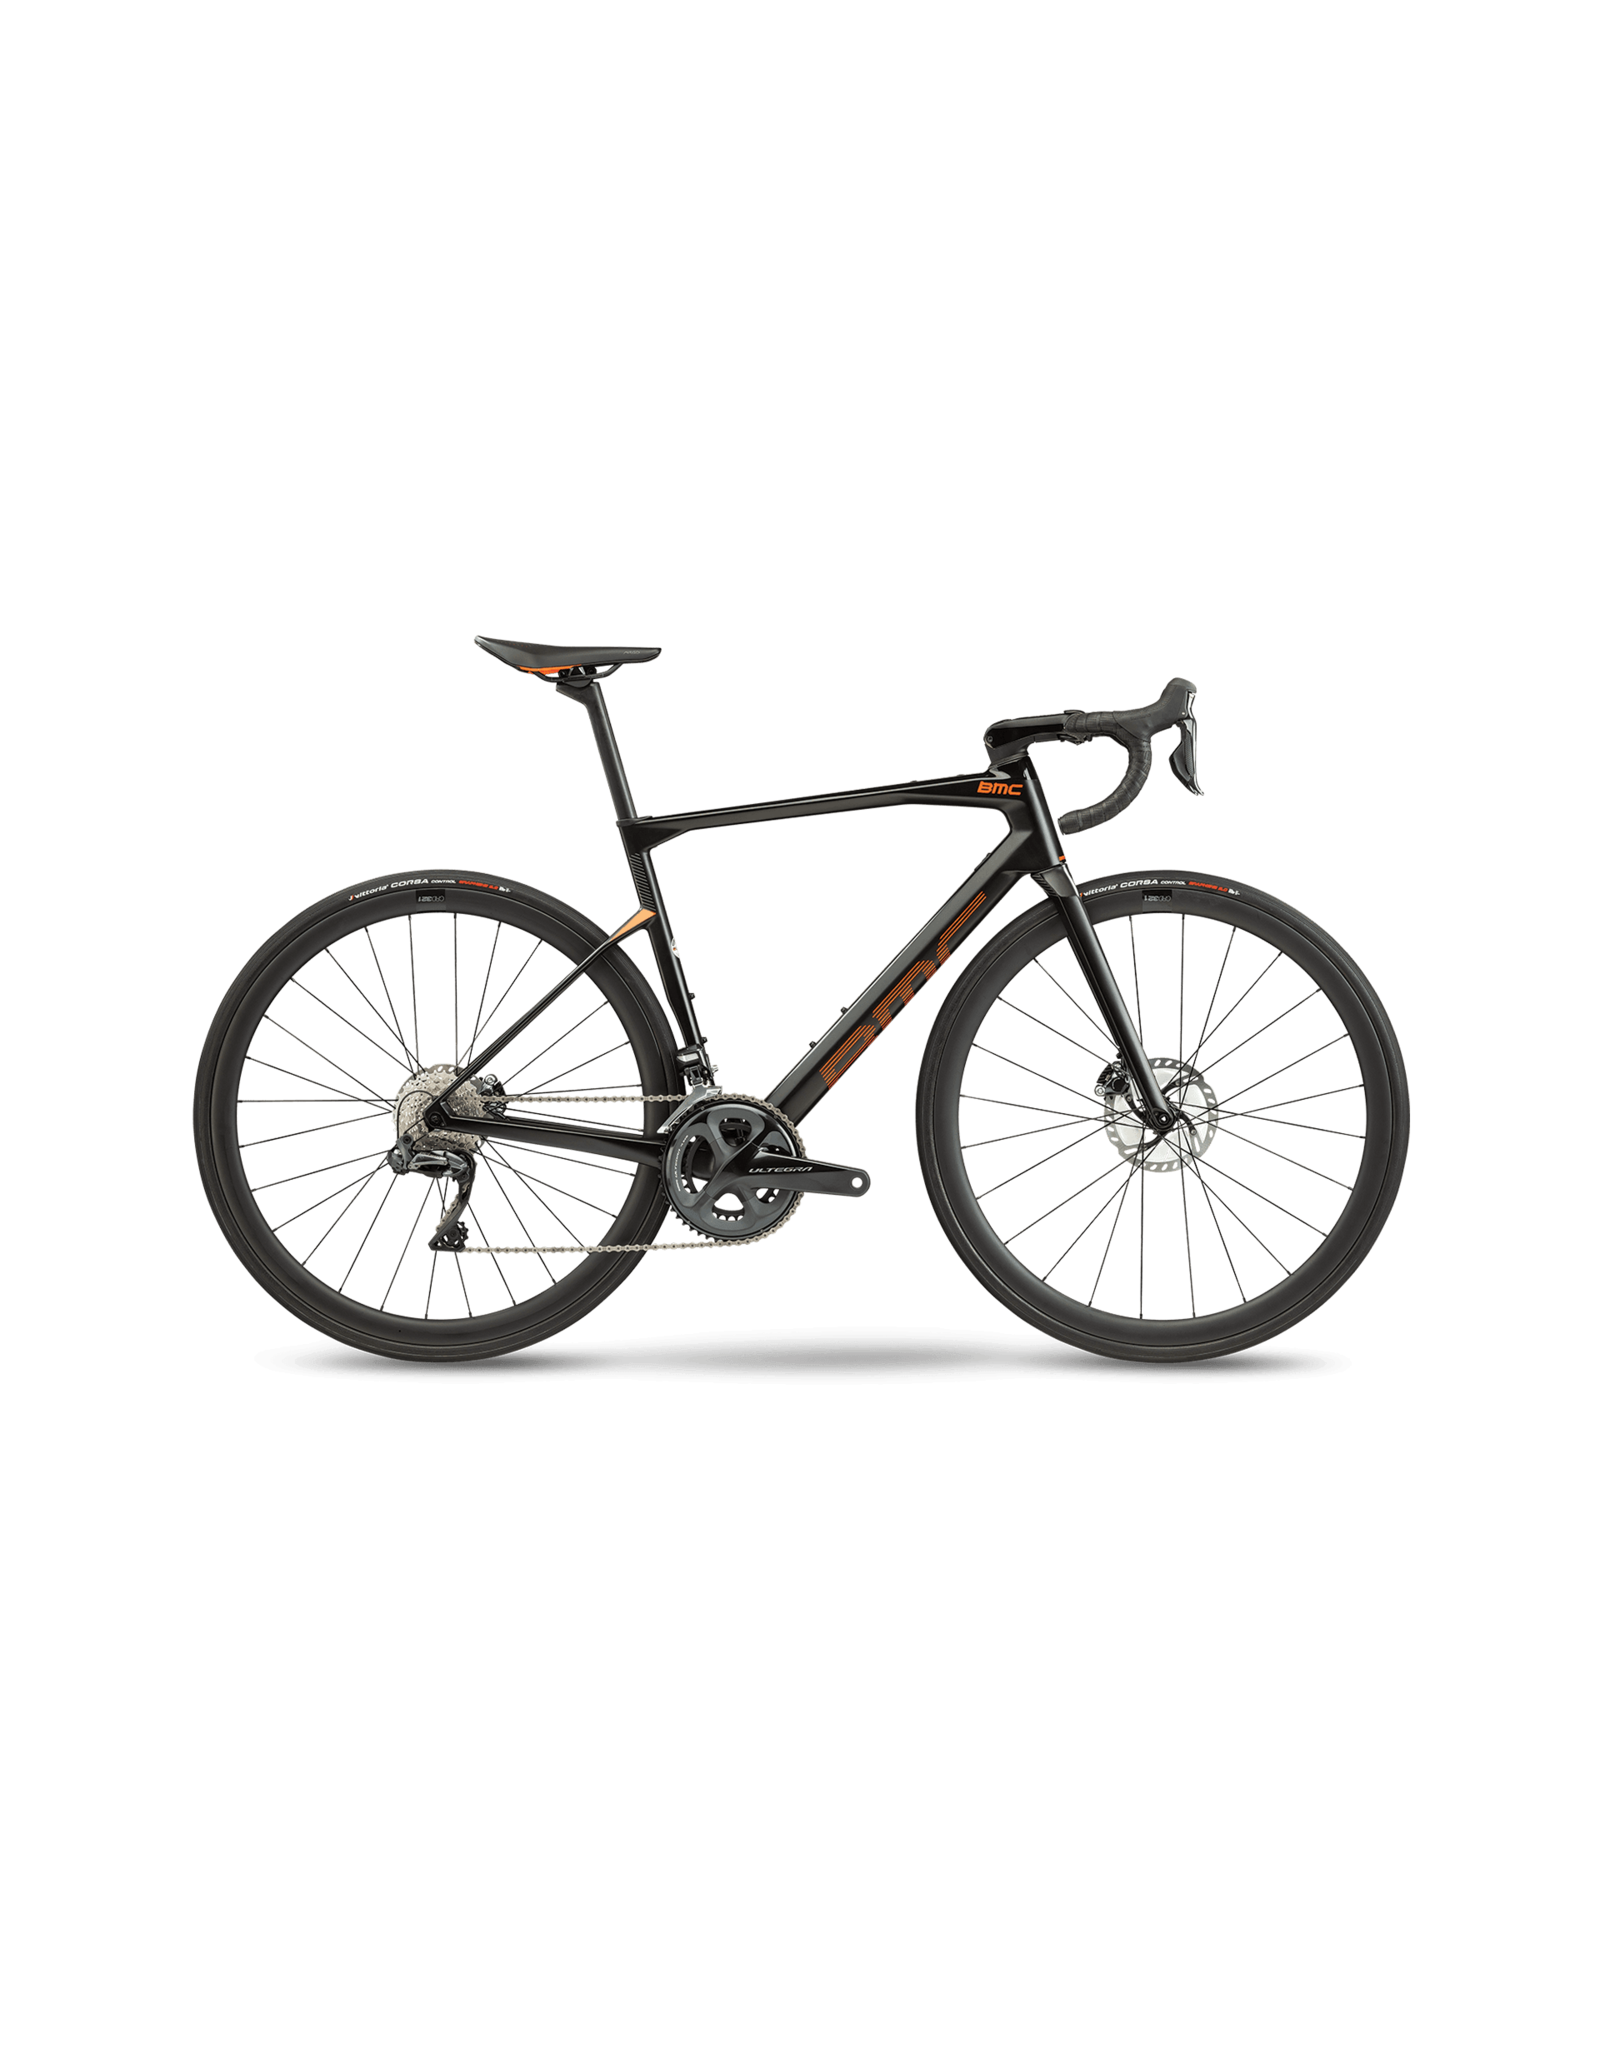 BMC ROADMACHINE 01 FOUR ULTEGRA DI2 DISC 2021